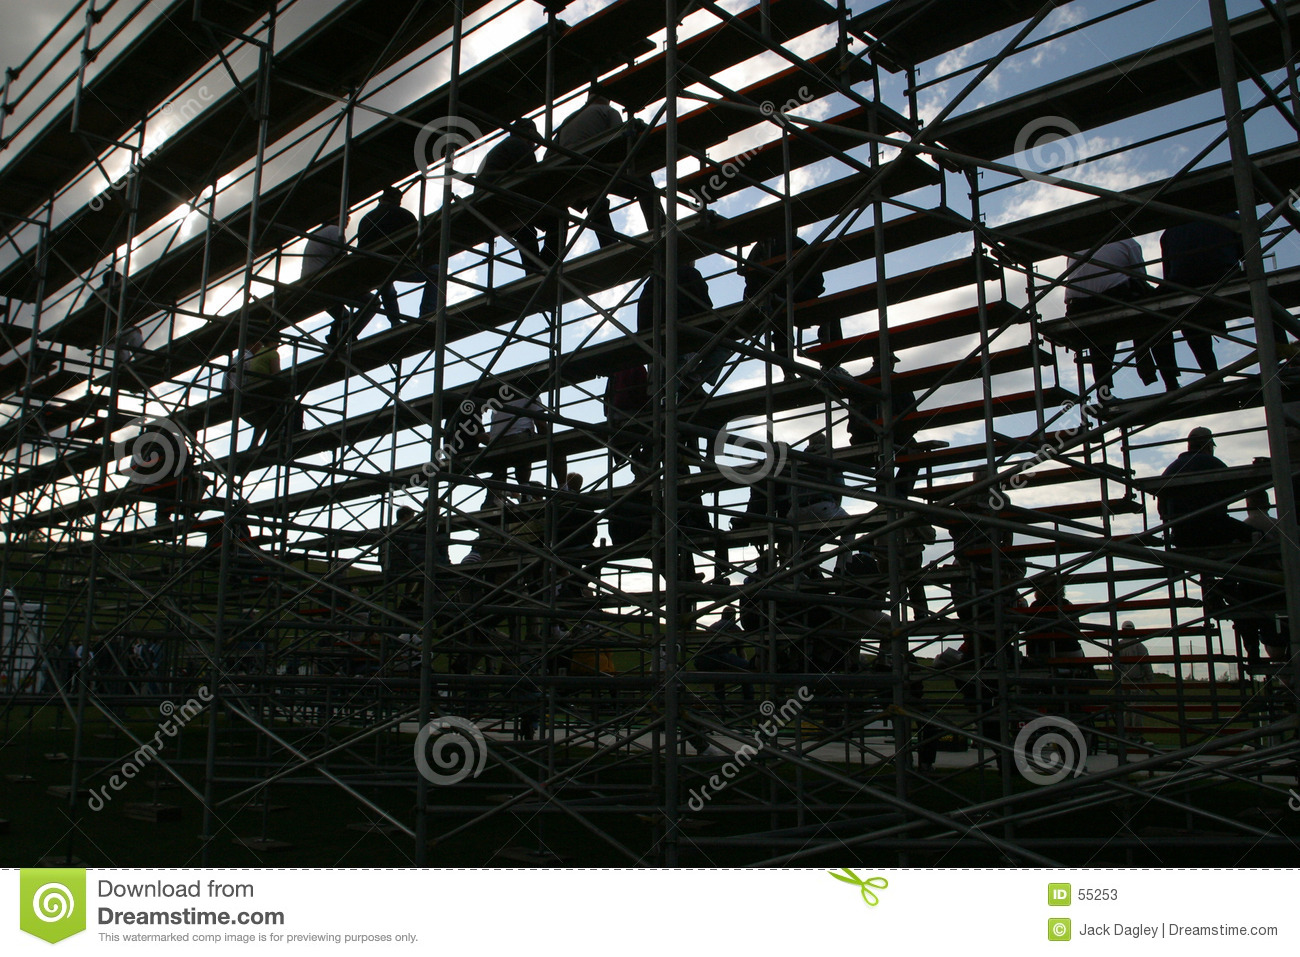 Silhouetted people on bleachers